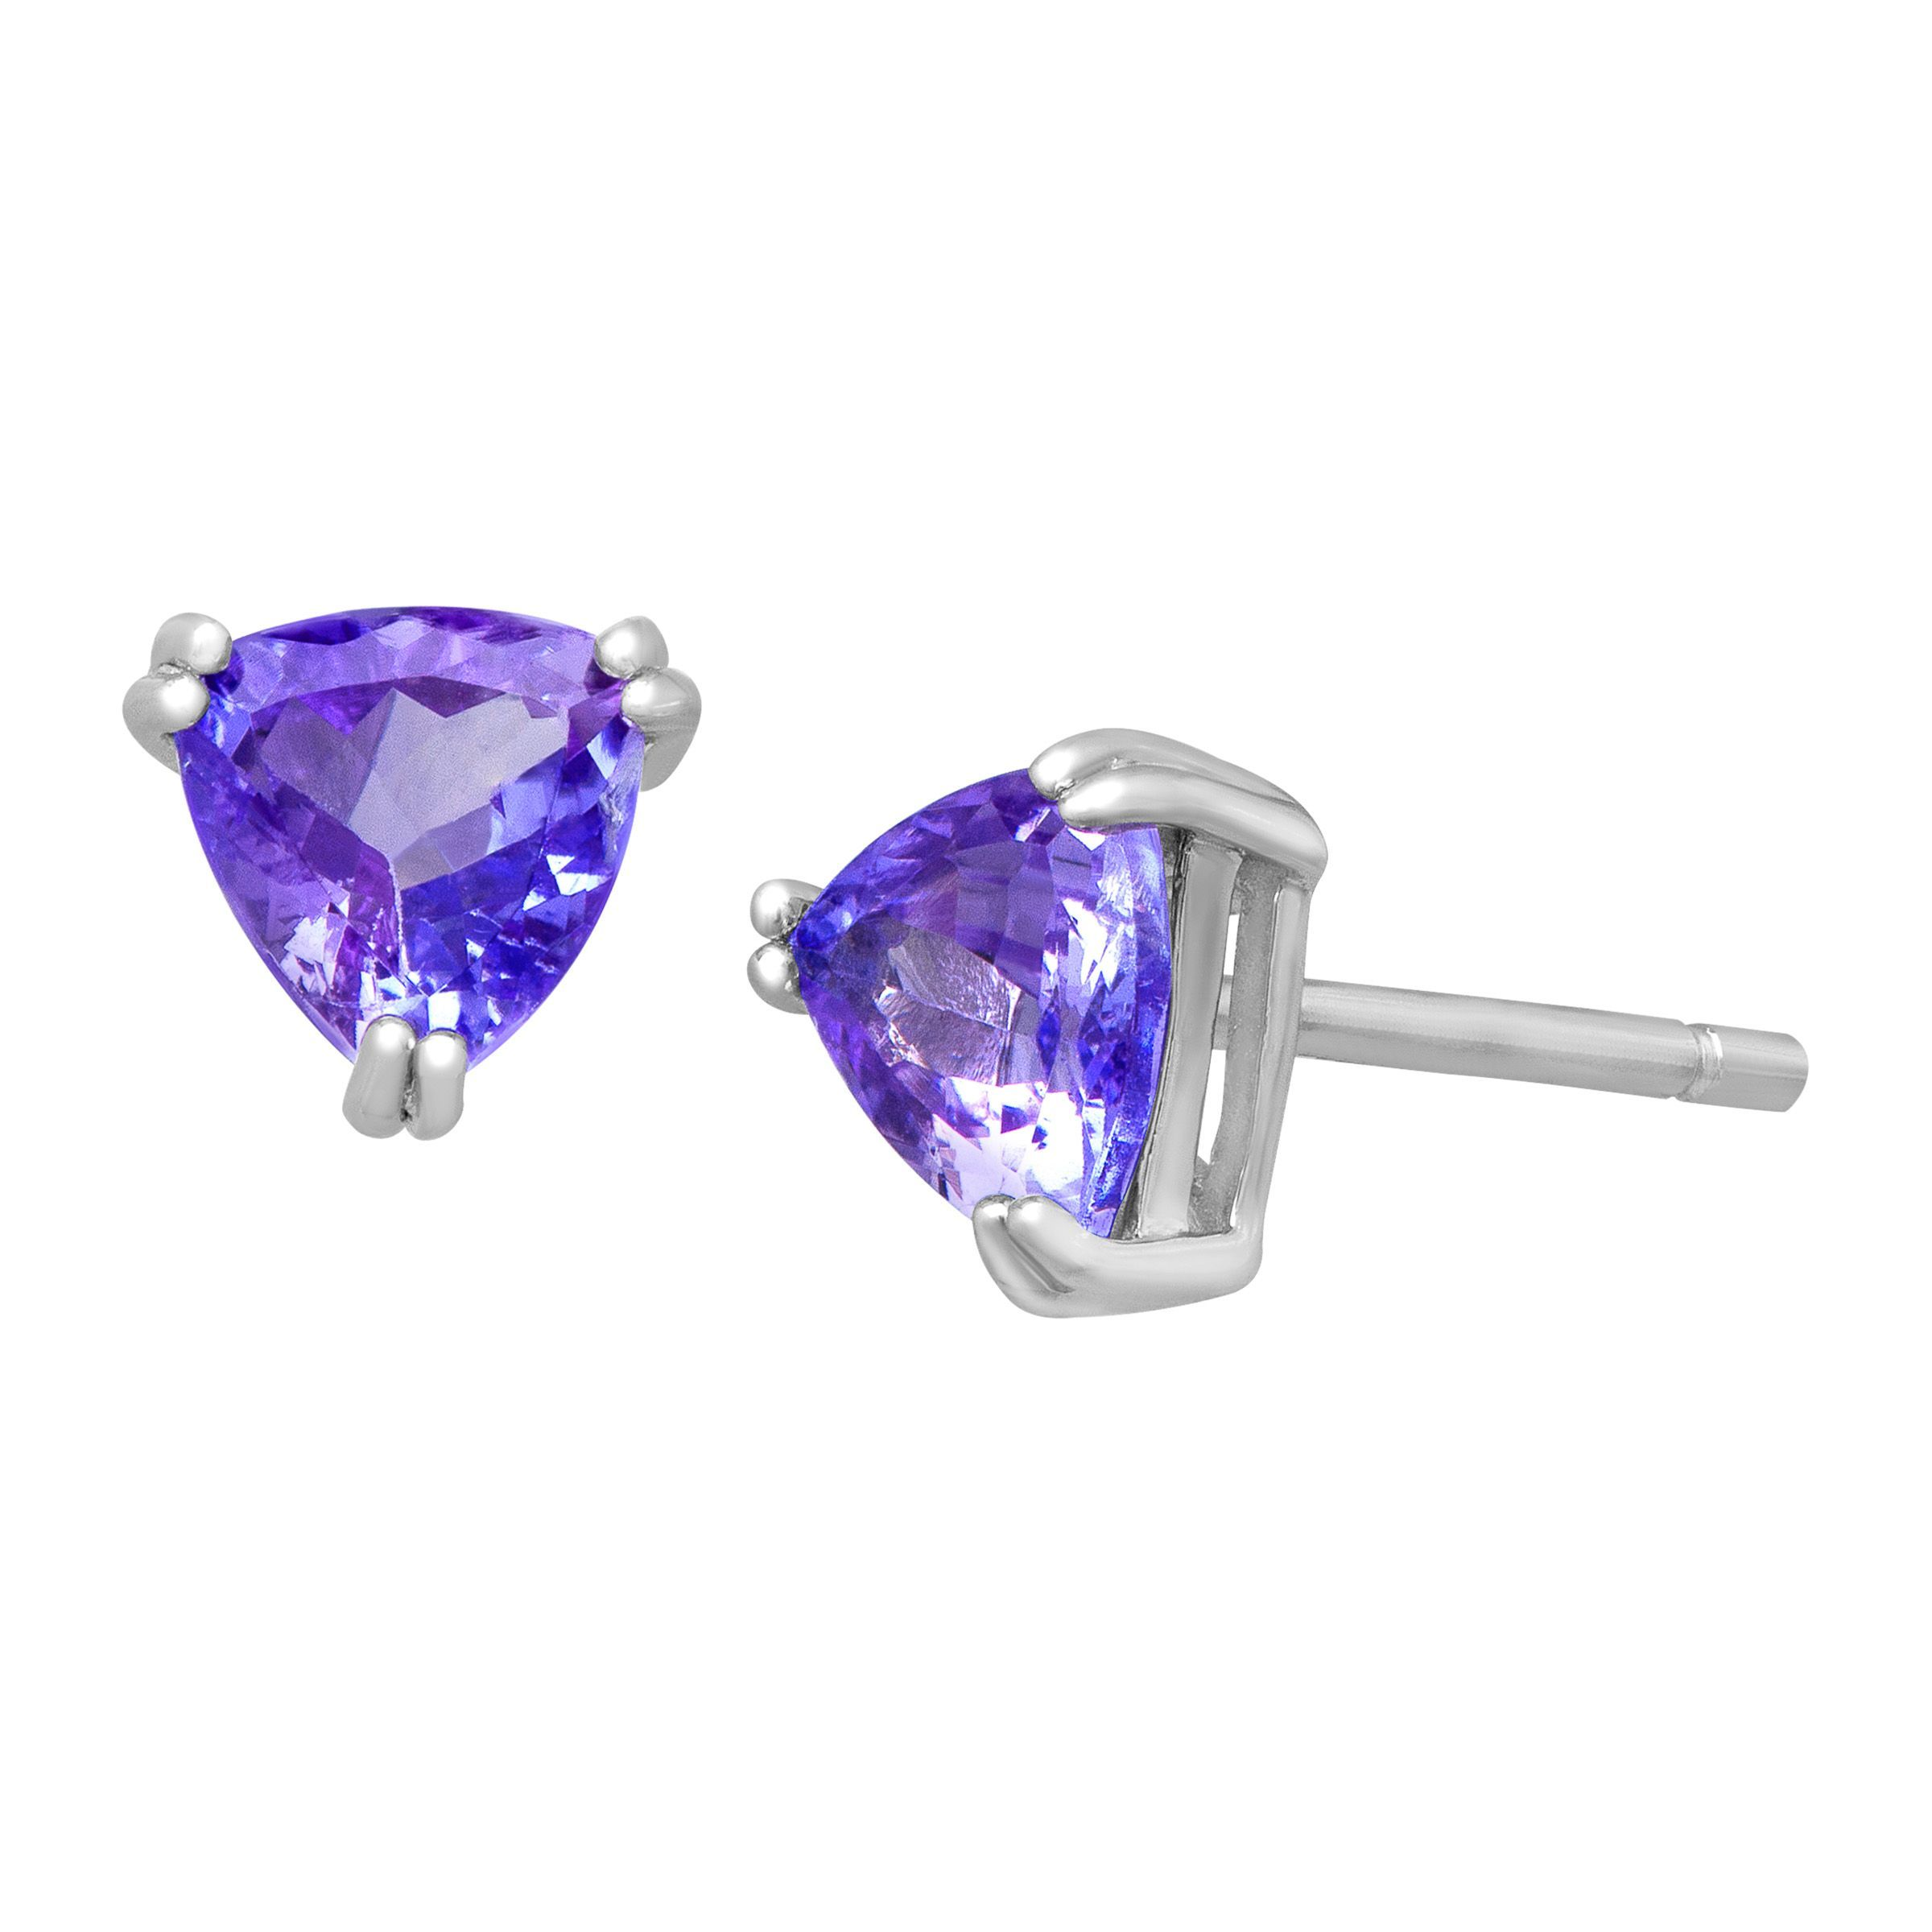 fgjynjl trillion earrings ct out styles with tanzanite pick bingefashion jewelry different